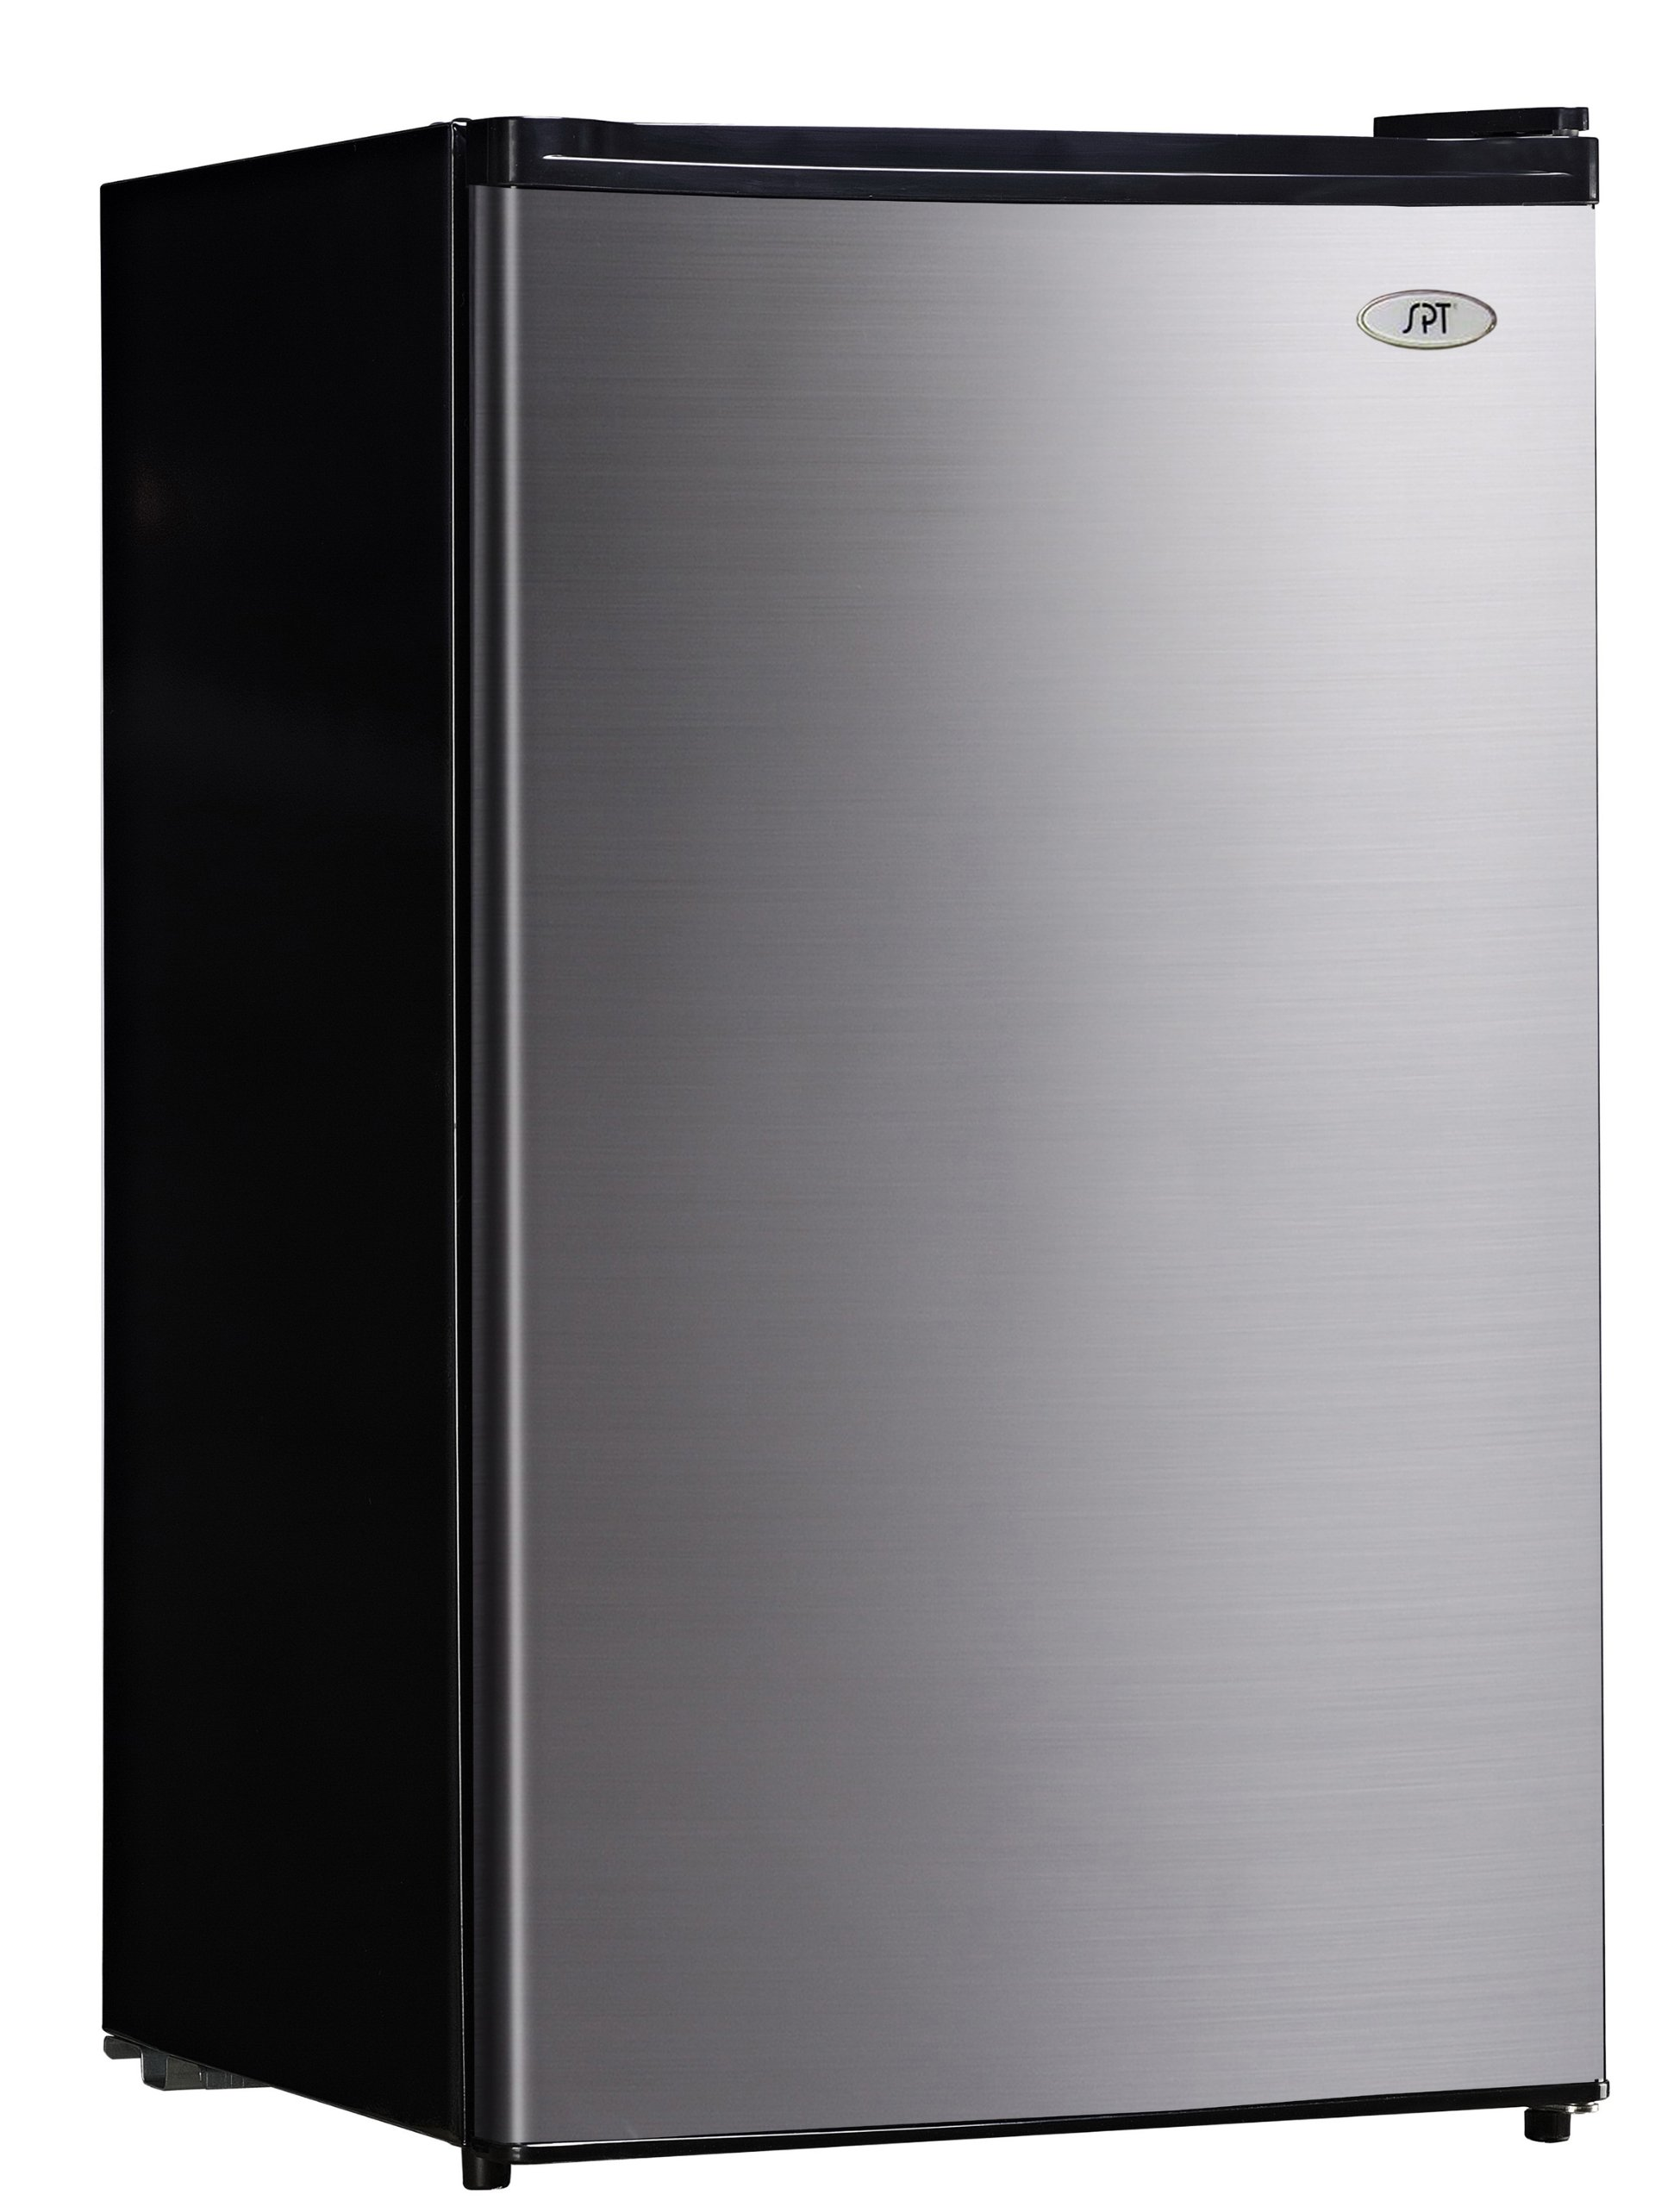 SPT RF-444SS Compact Refrigerator, 4.4 Cubic Feet, Stainless Steel, Energy Star